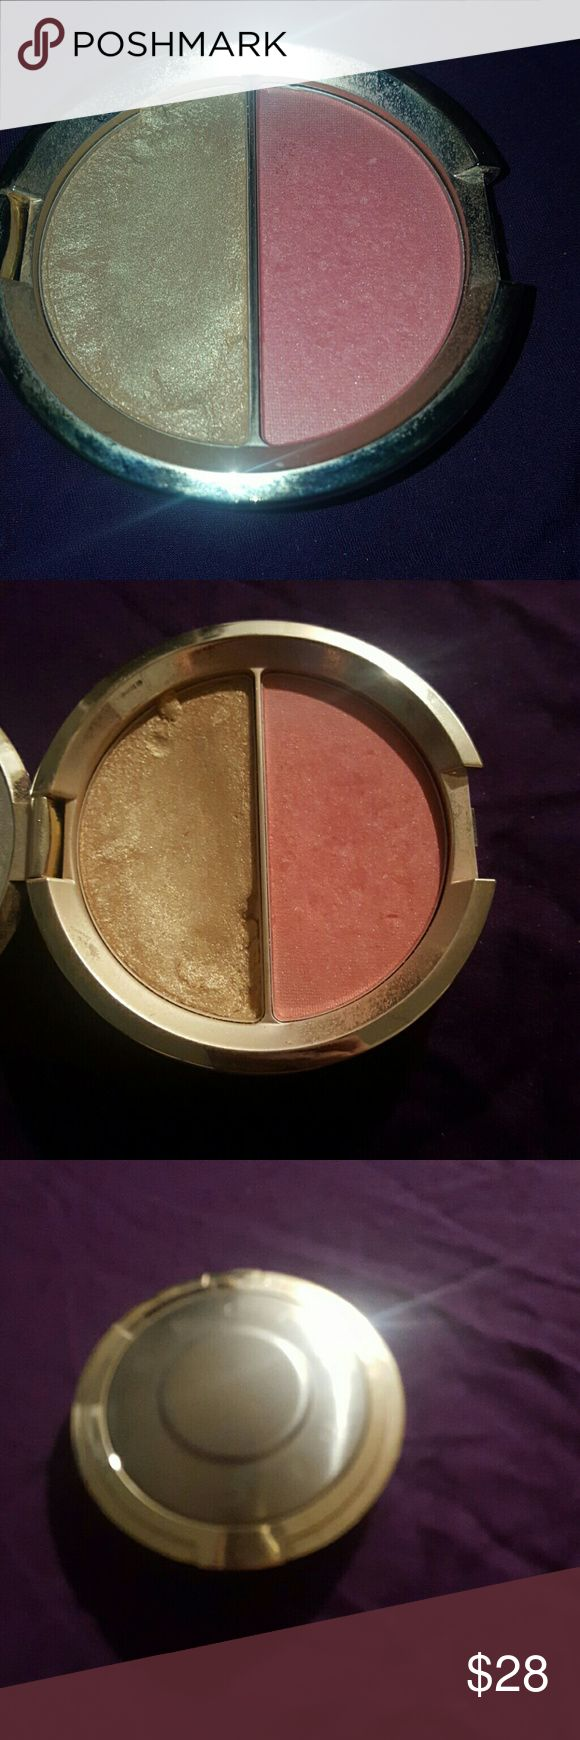 Becca shimmering skin perfector champagne split Champagne pop highlight prosecco blush Used as shown still a lot left no box limited edition sold out no holds no trades reasonable offers welcome BECCA Makeup Blush